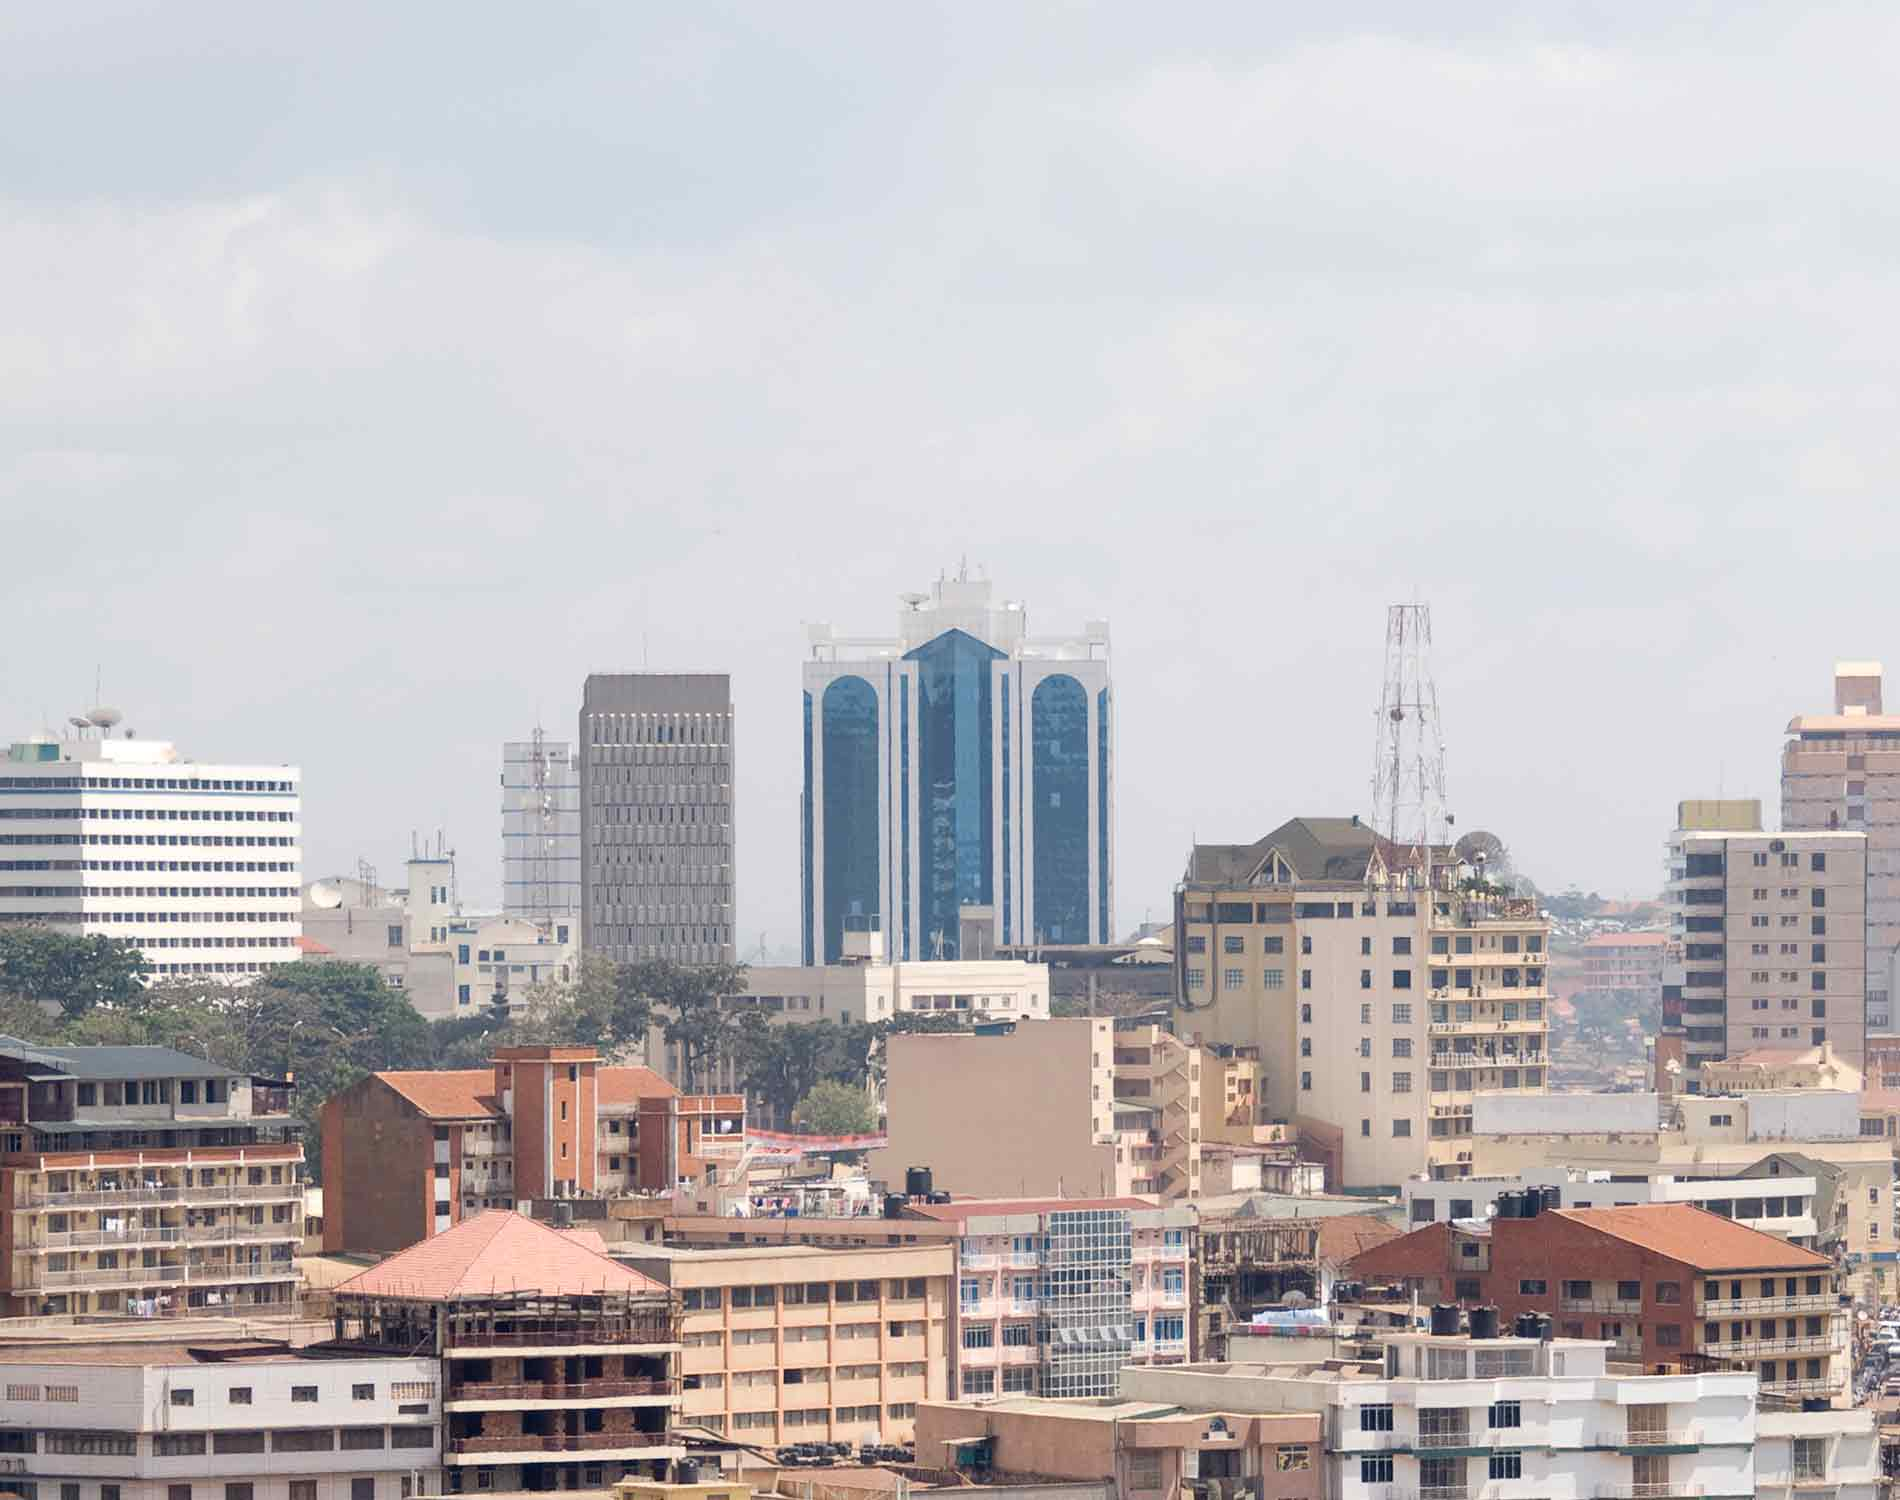 /-/media/images/website/background-images/offices/kampala/kampala.jpg